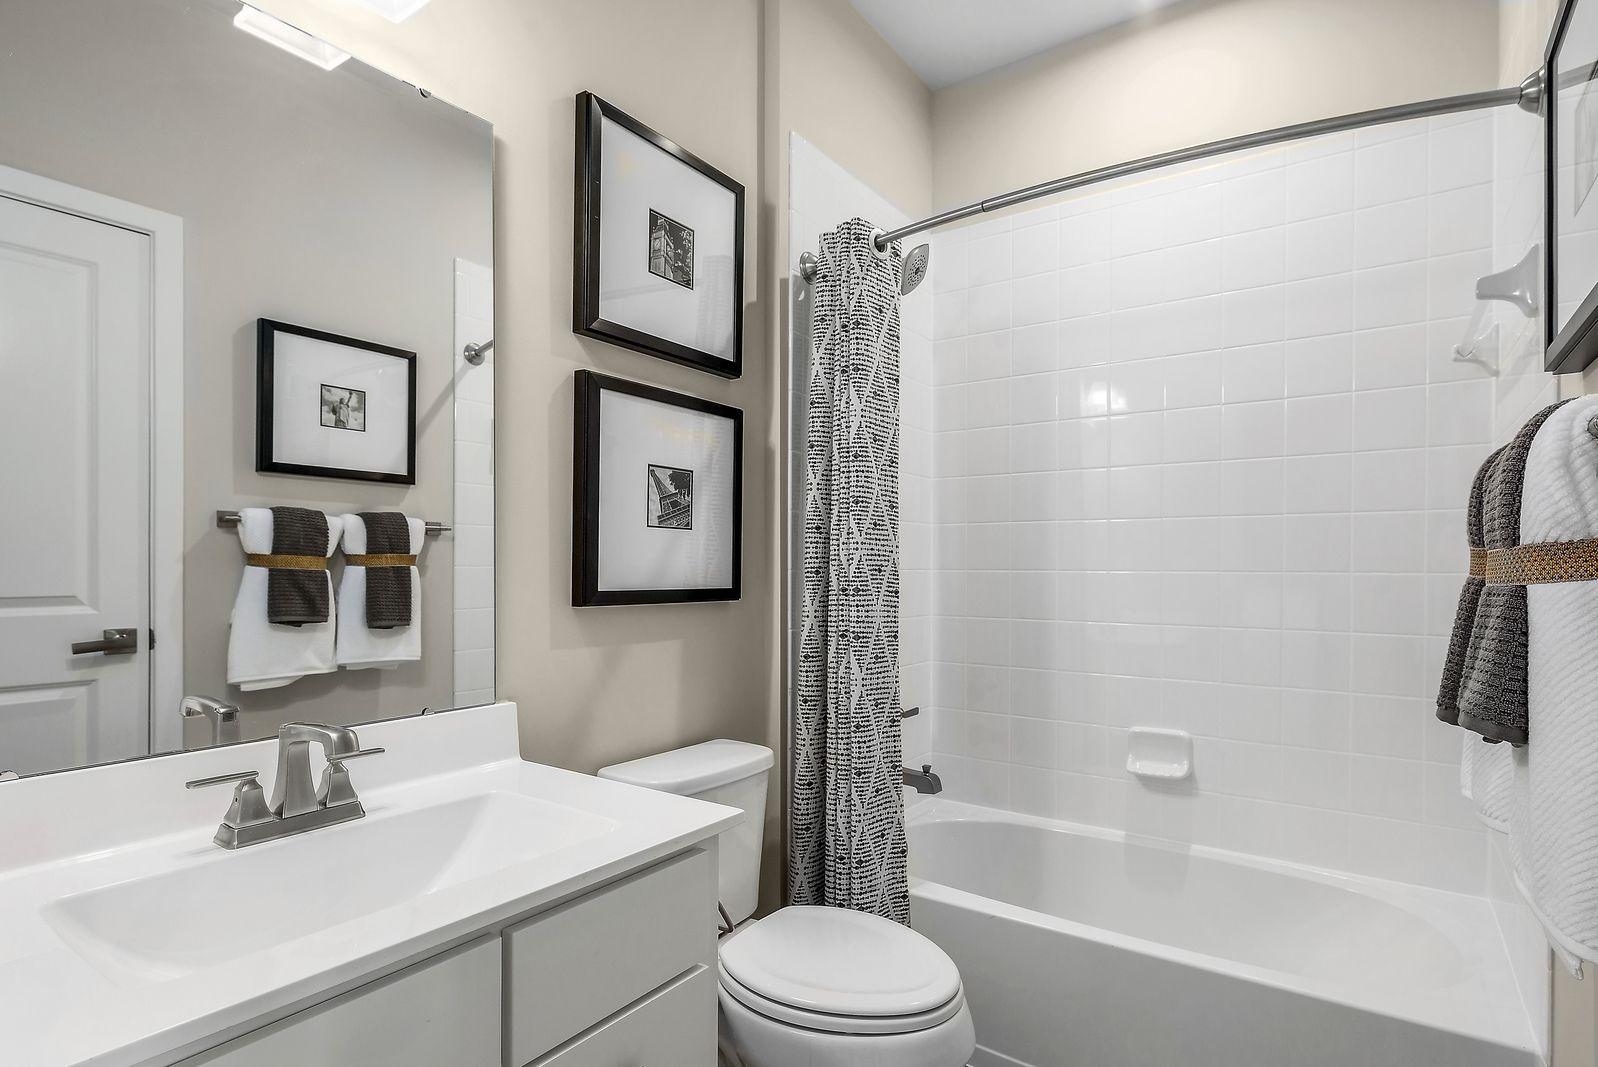 Bathroom featured in the Strauss By Ryan Homes in Baltimore, MD